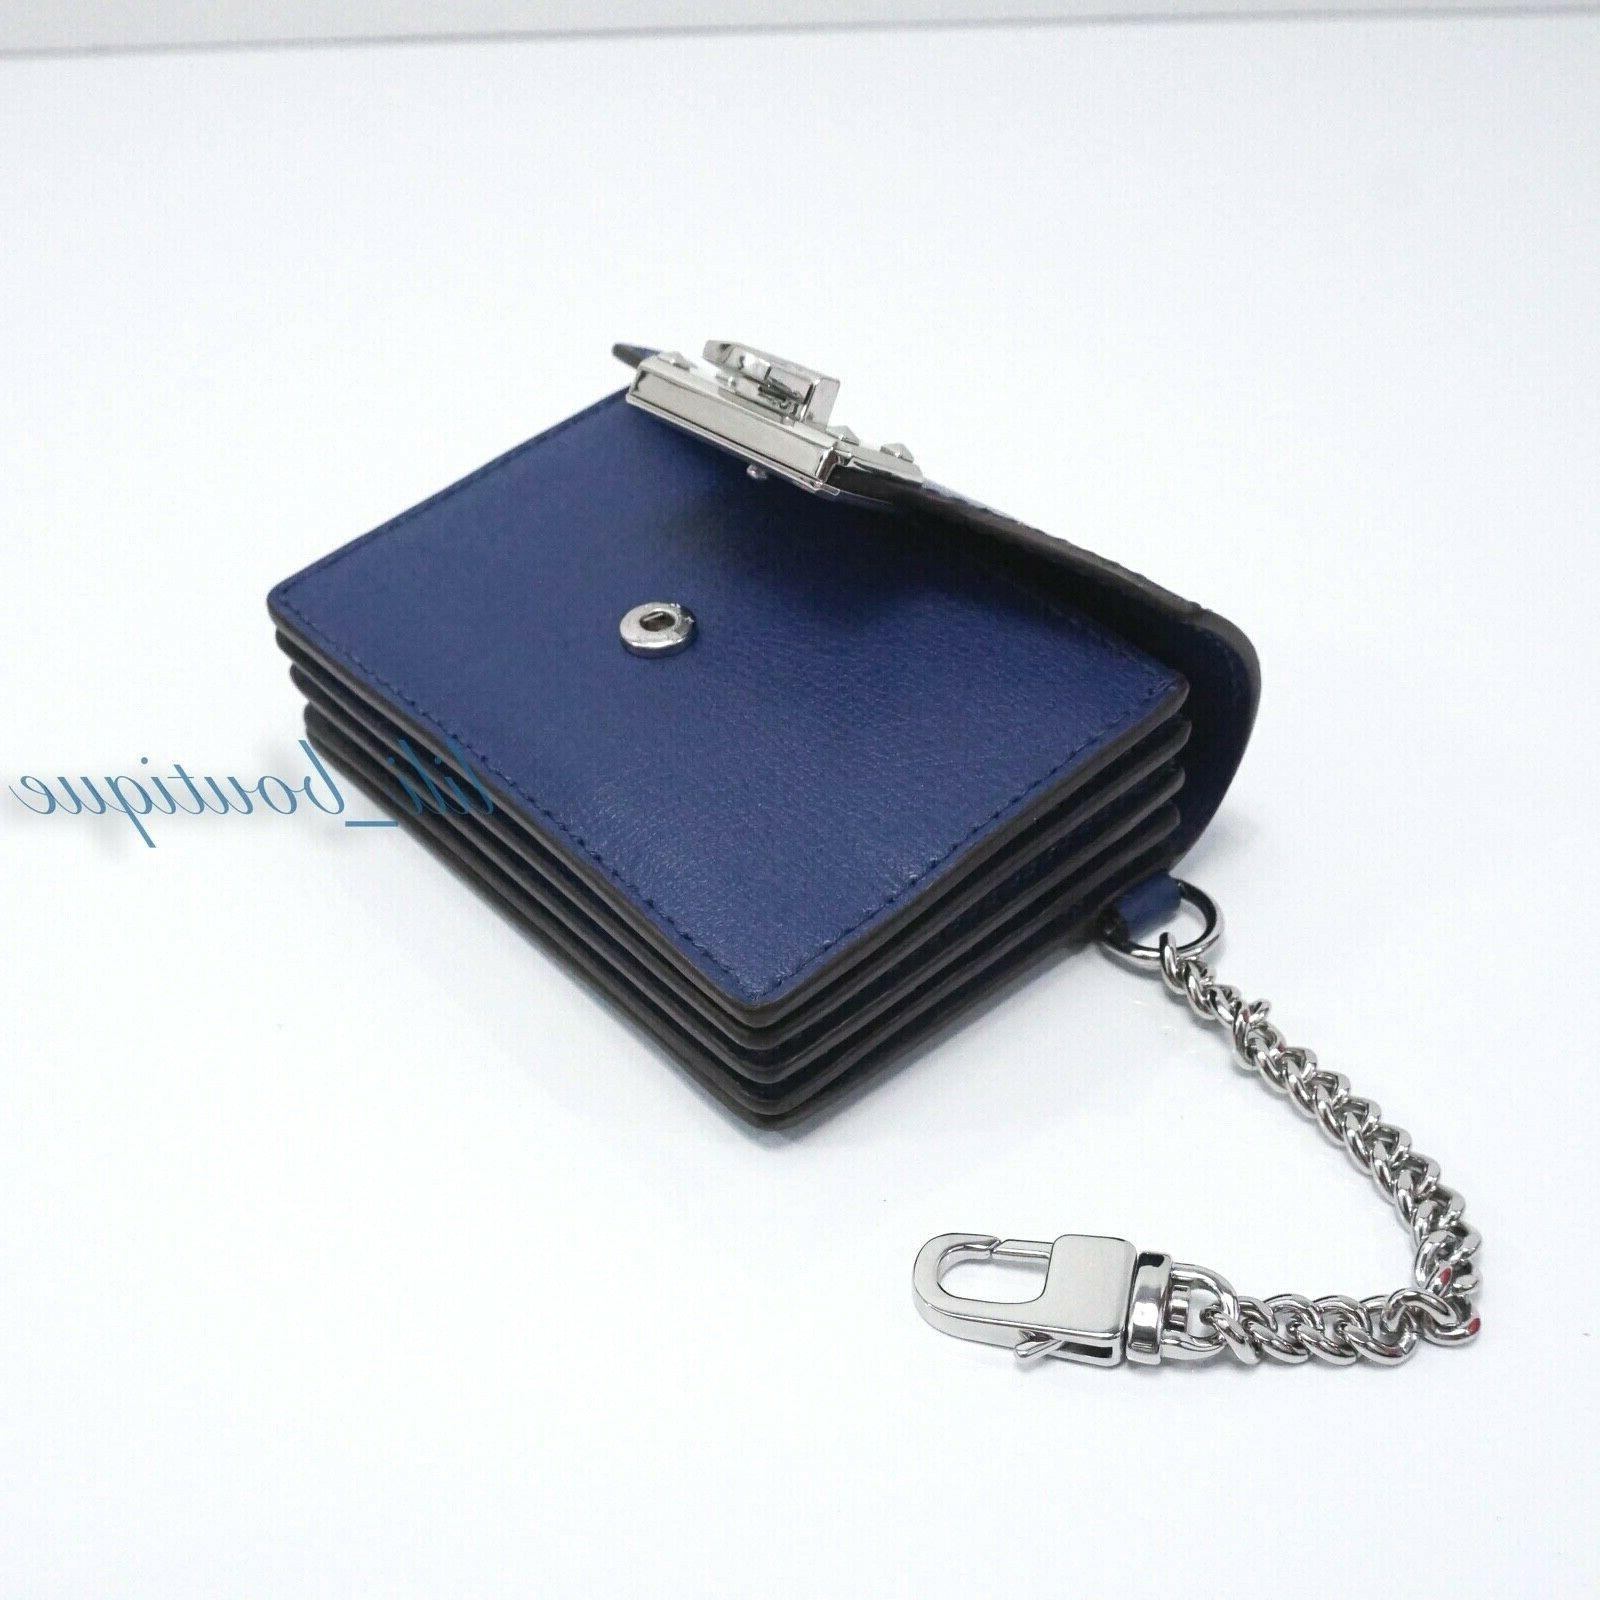 NWT Kinsley Card Holder Leather Sapphire Blue $148